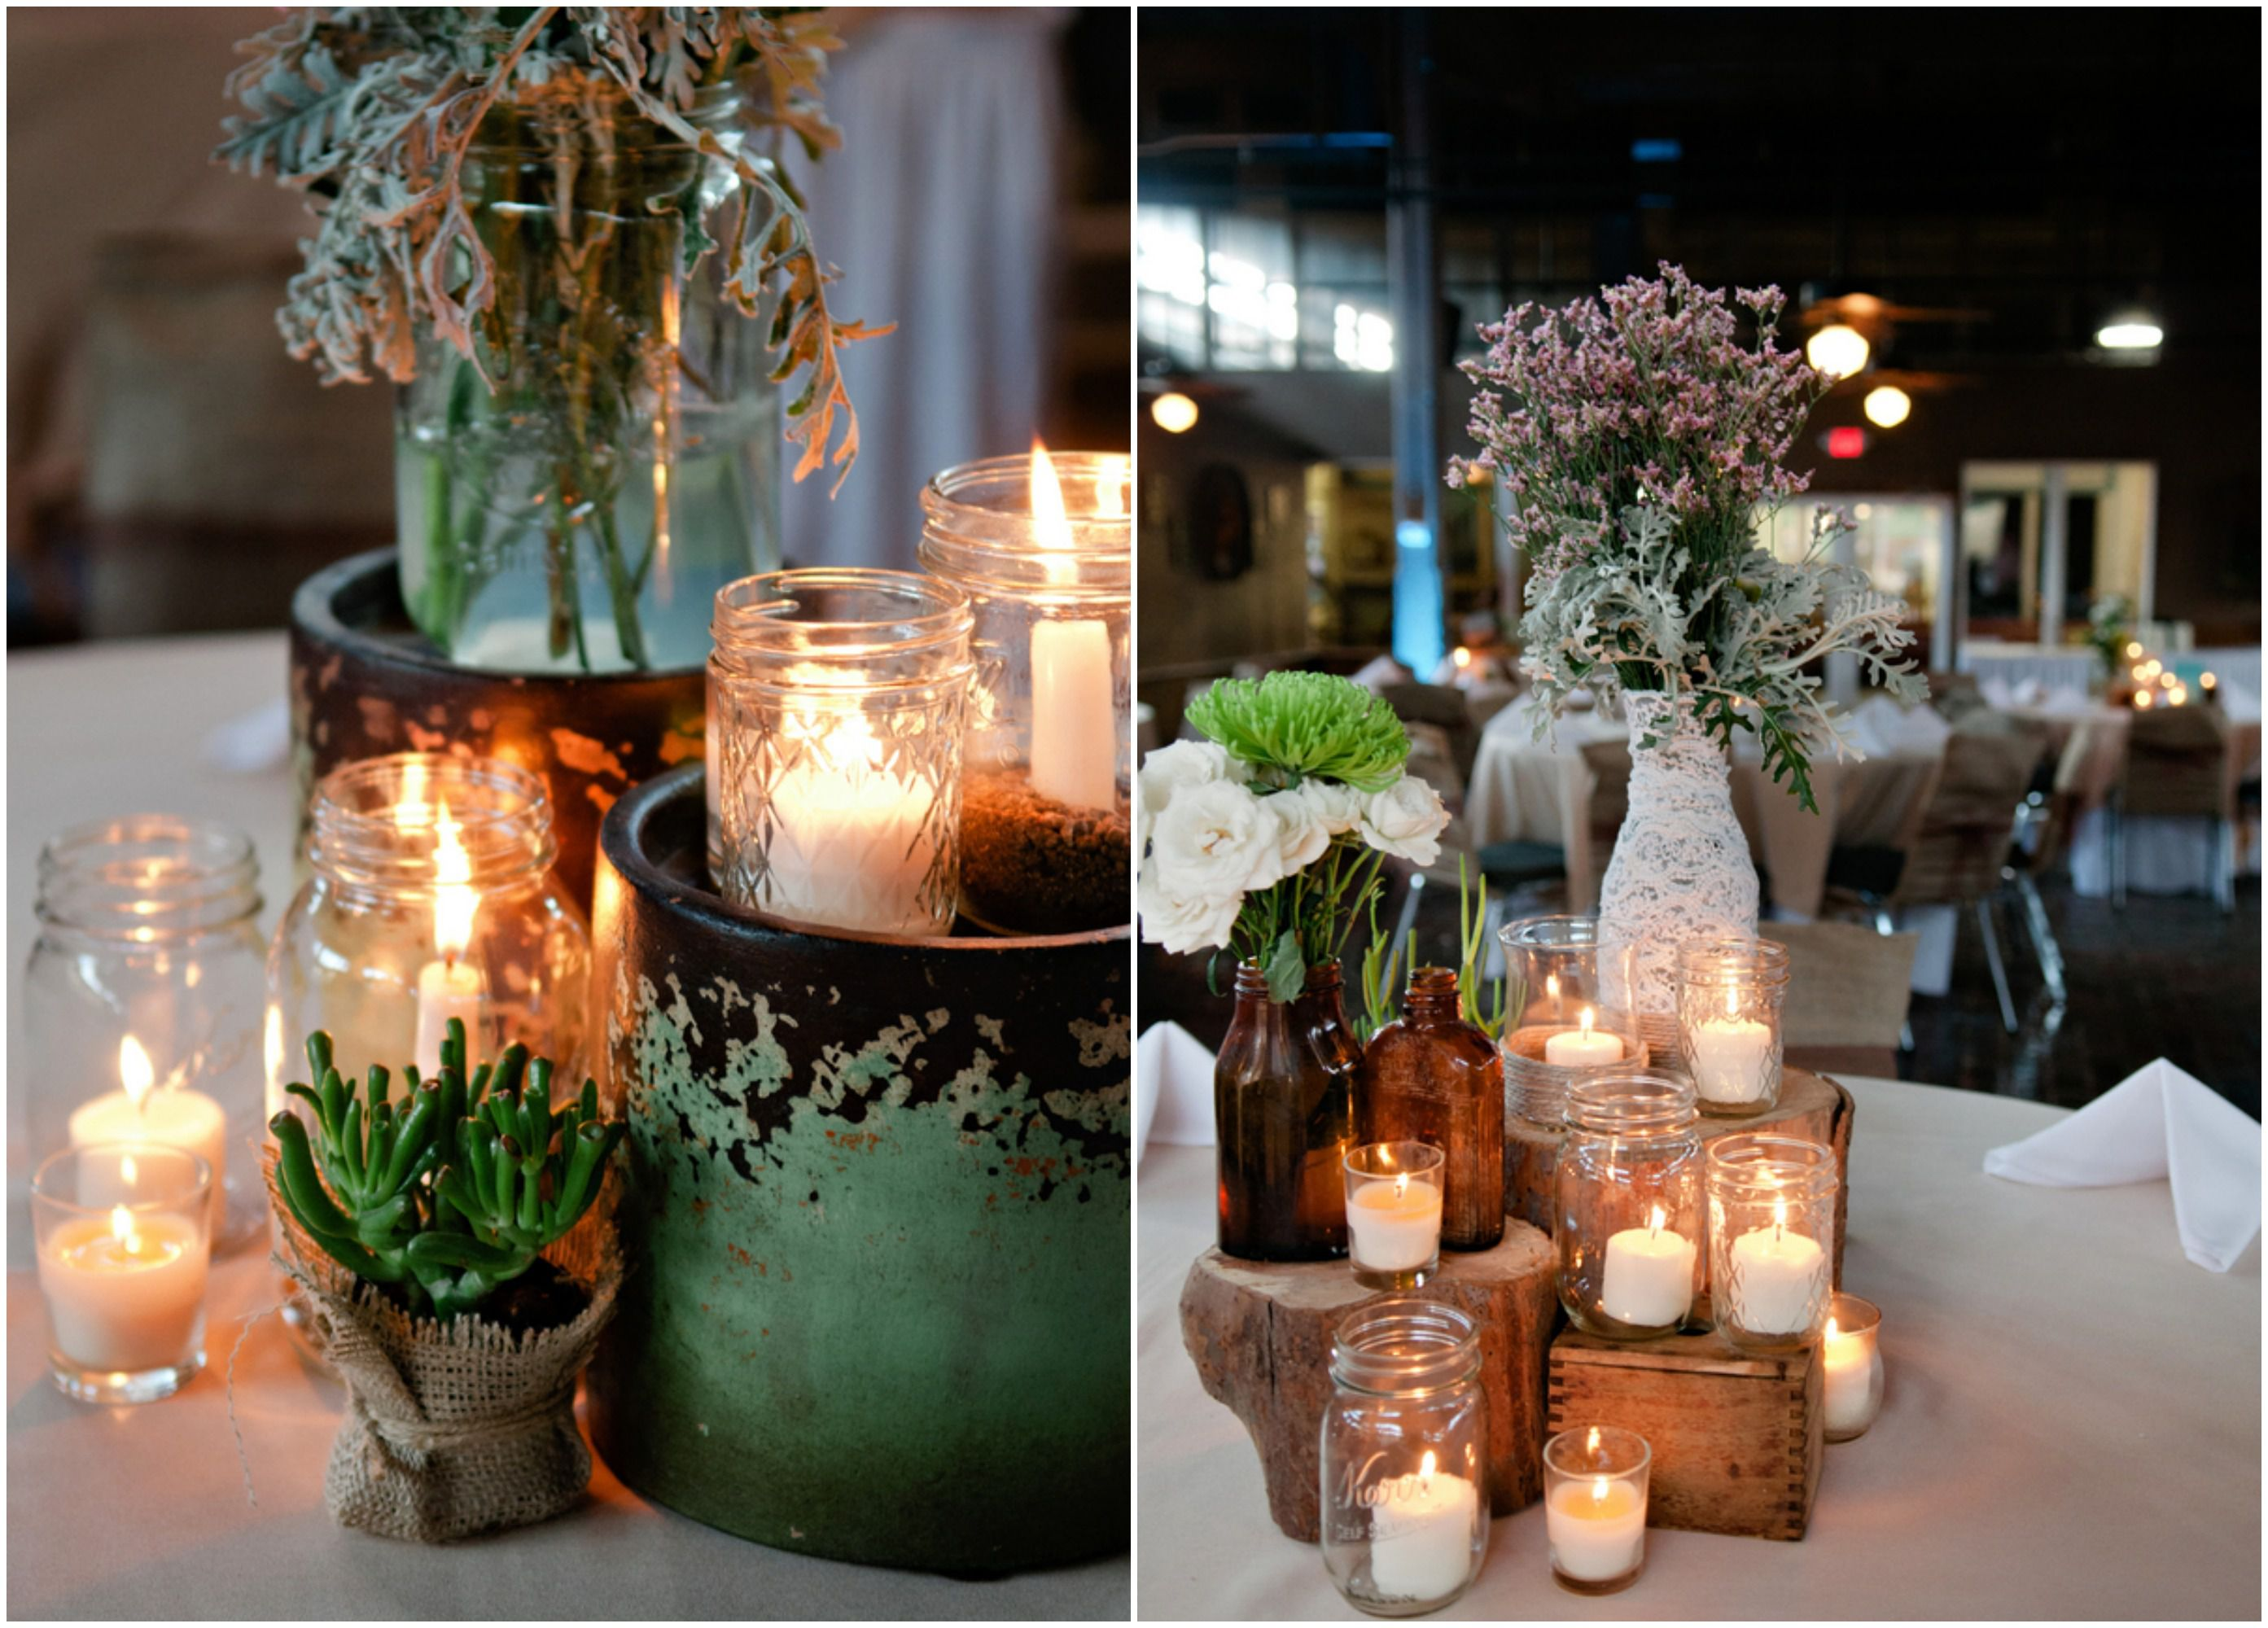 Texas Country Wedding With Vintage Decorations - Rustic ... - photo#16